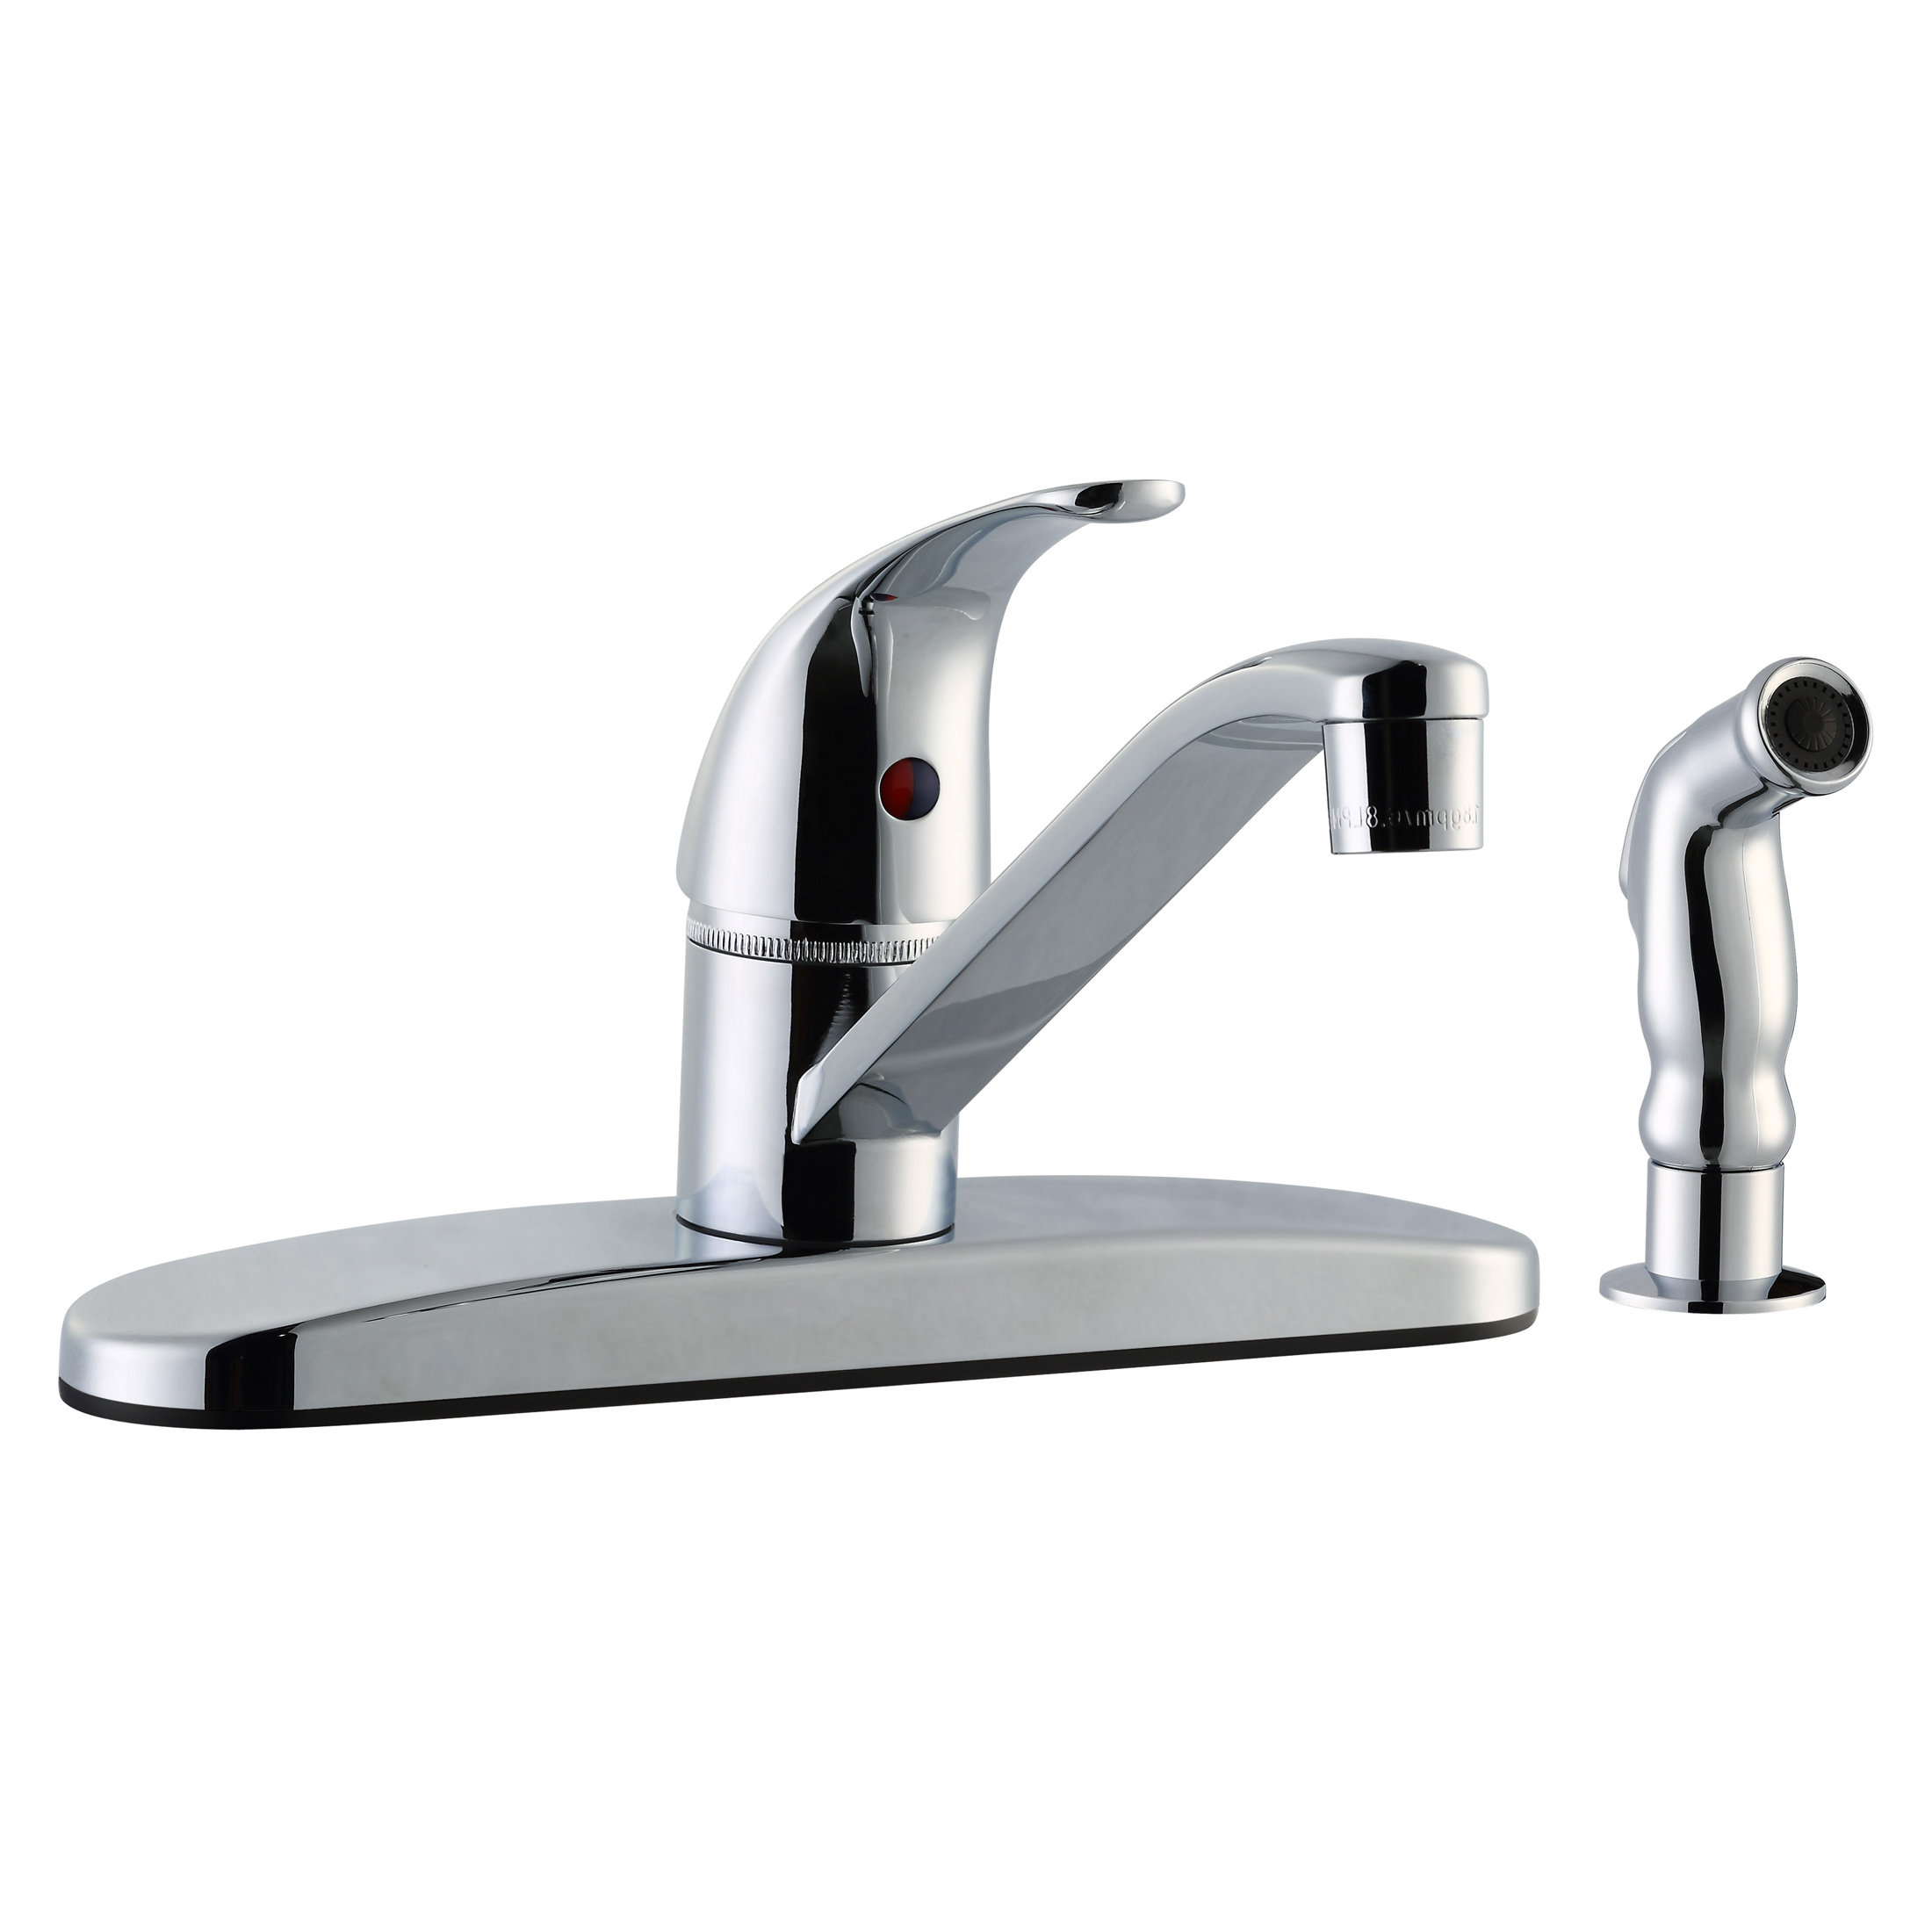 Middleton Kitchen Faucet With Sidesprayer 545863 | Plumbing ...